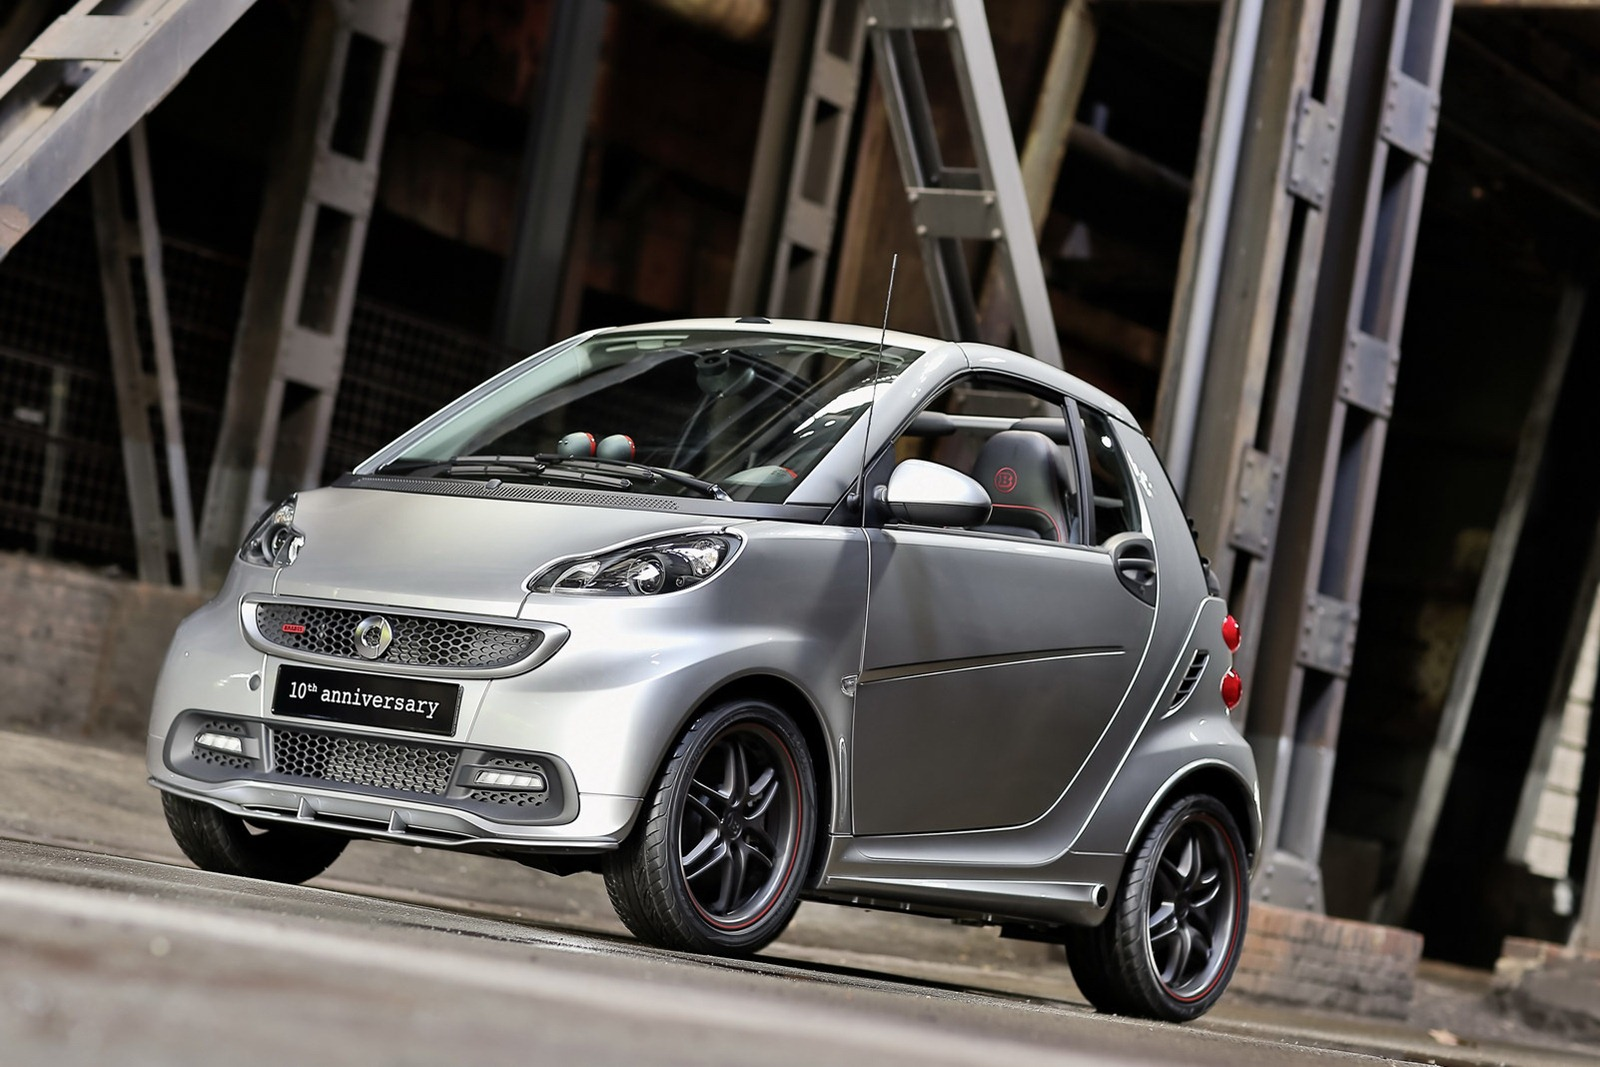 smart fortwo brabus 10th anniversary unveiled autoevolution. Black Bedroom Furniture Sets. Home Design Ideas